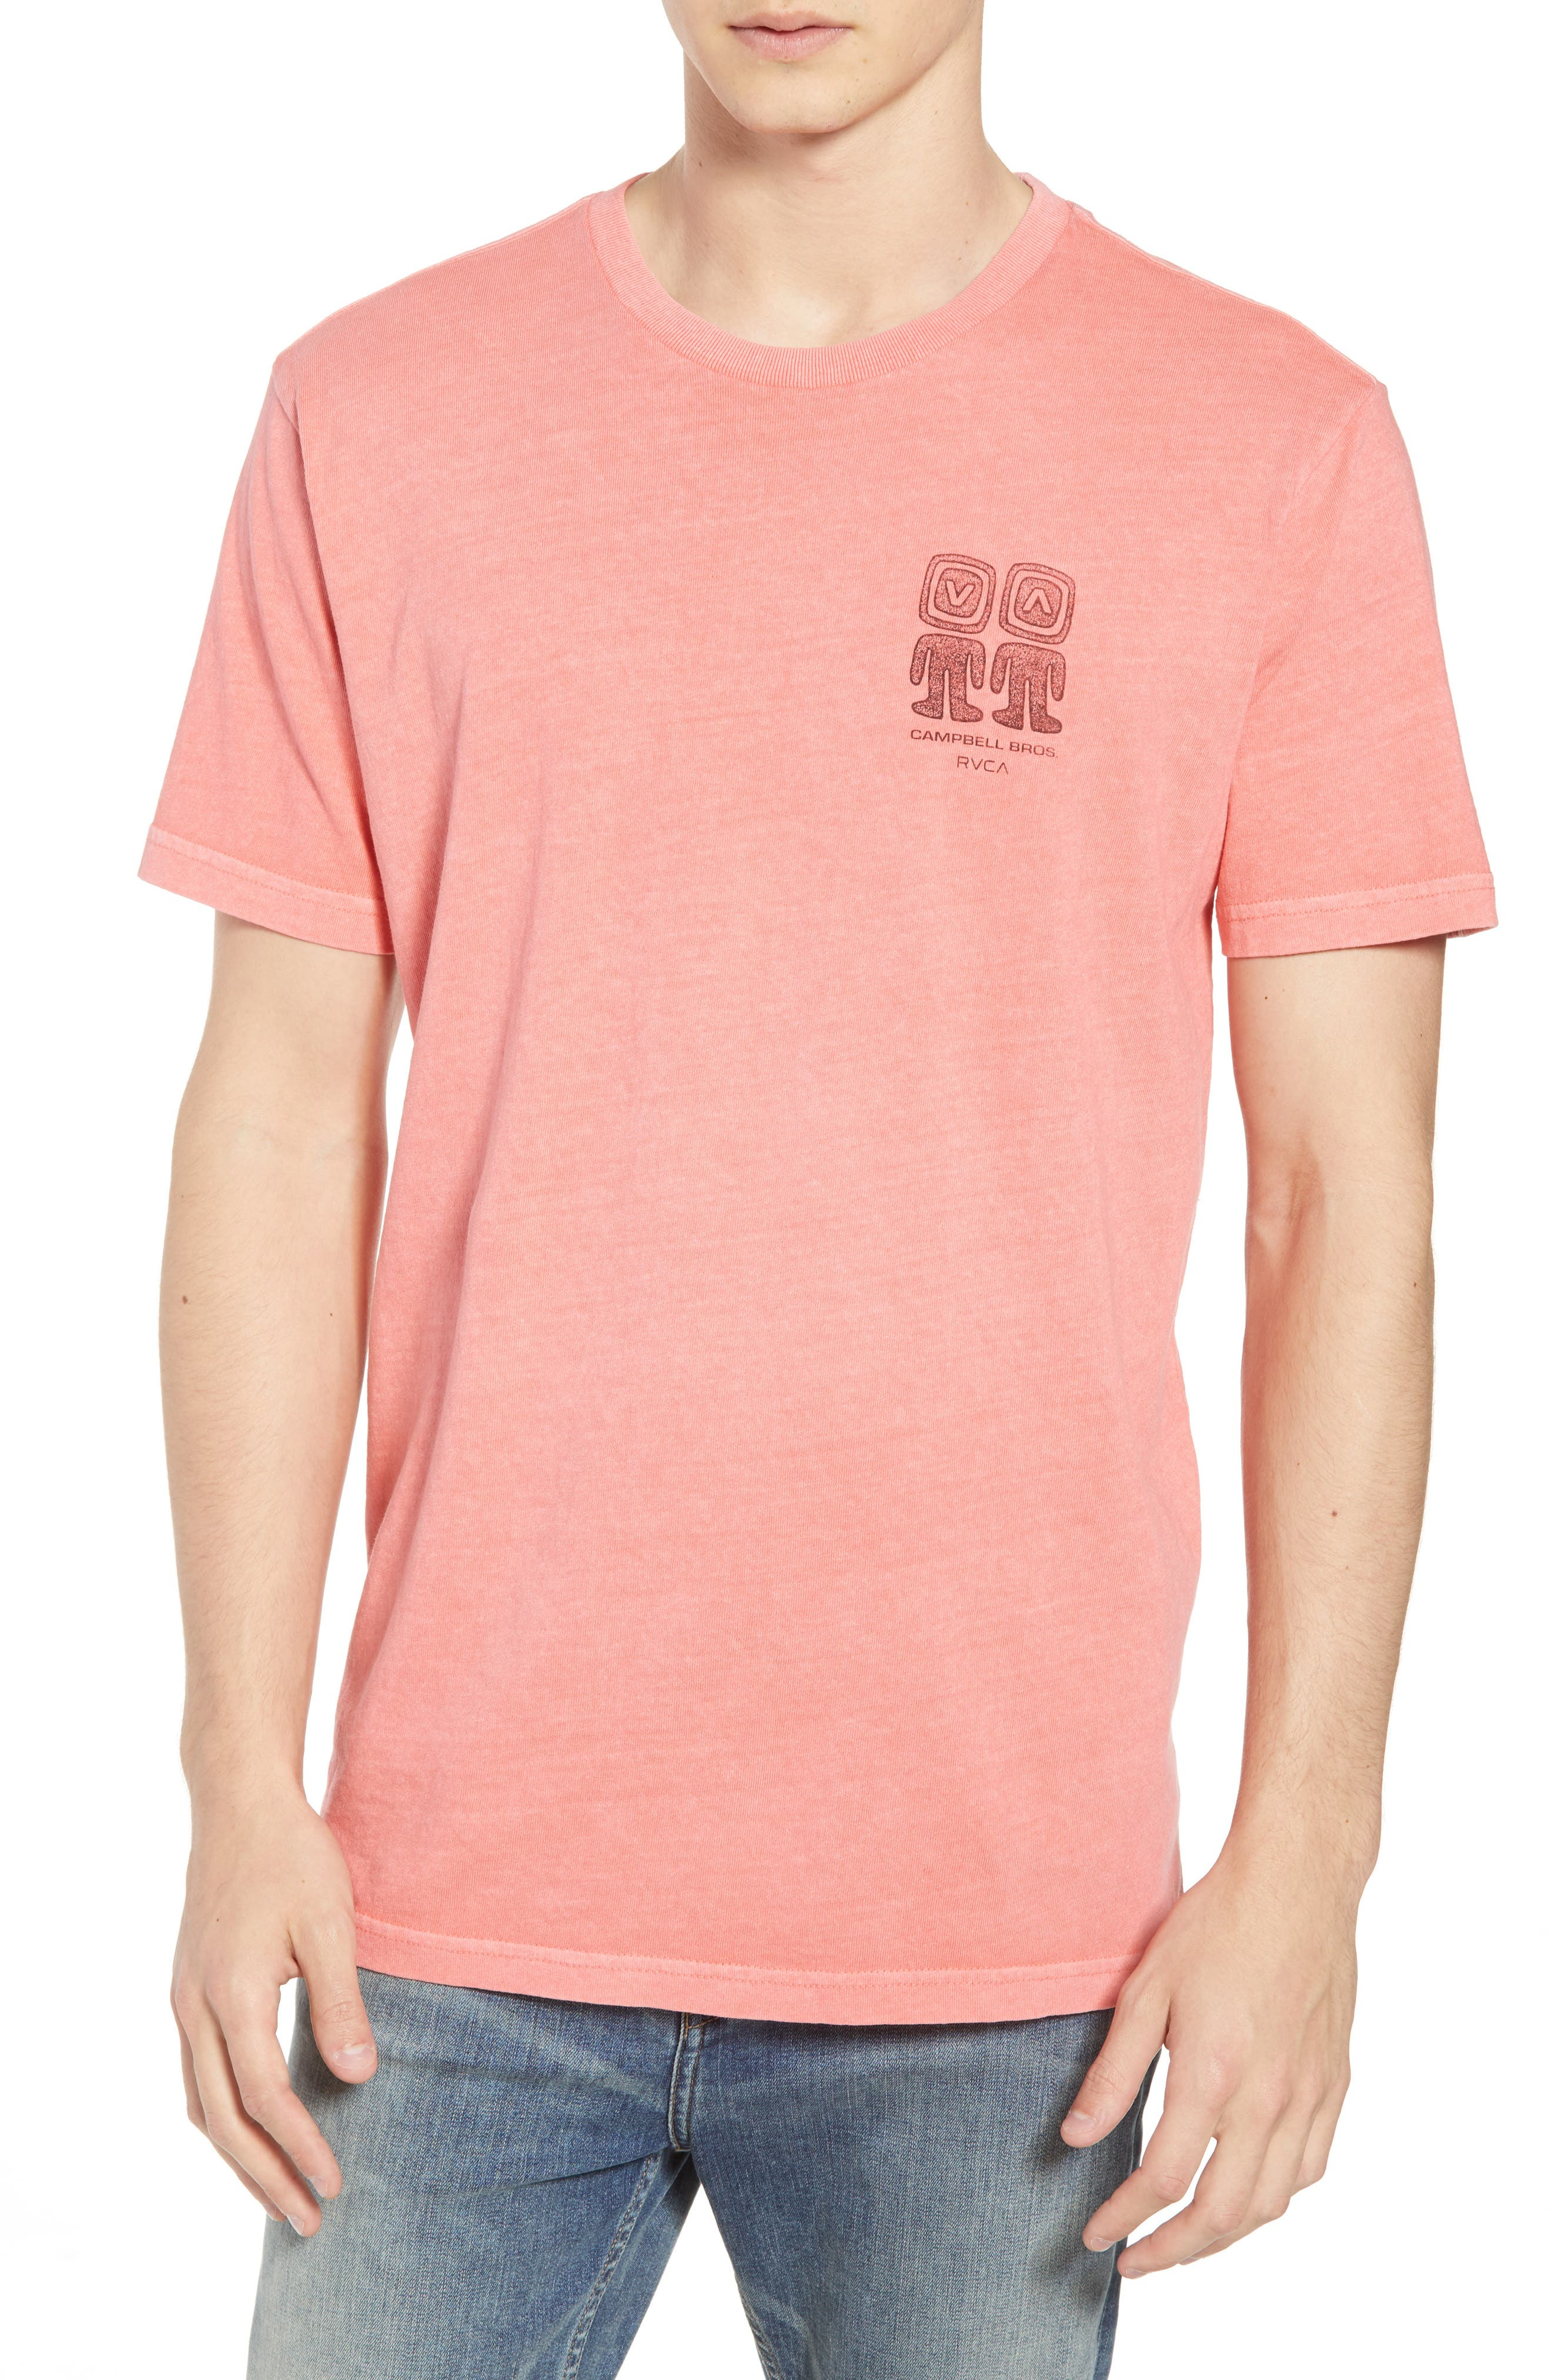 Campbell Brothers T-Shirt,                         Main,                         color, PINK